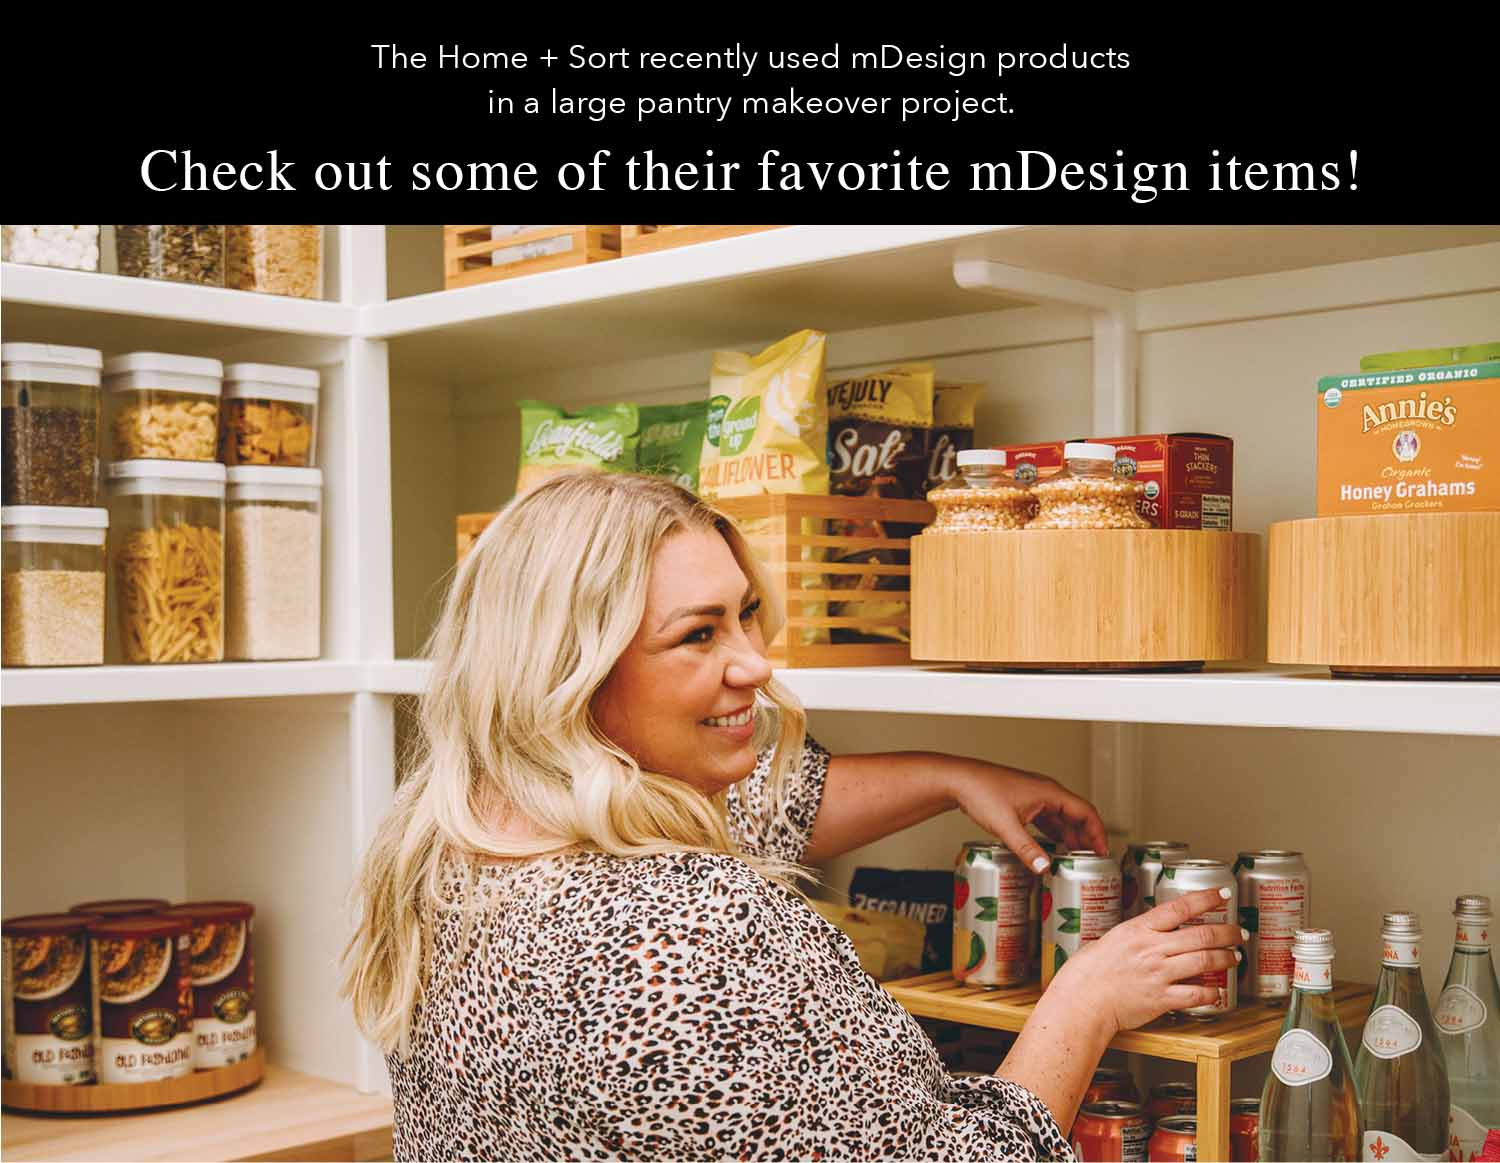 the home + sort recently used mdesign products in a large pantry makeover project.  check out some of their favorite mdesign items